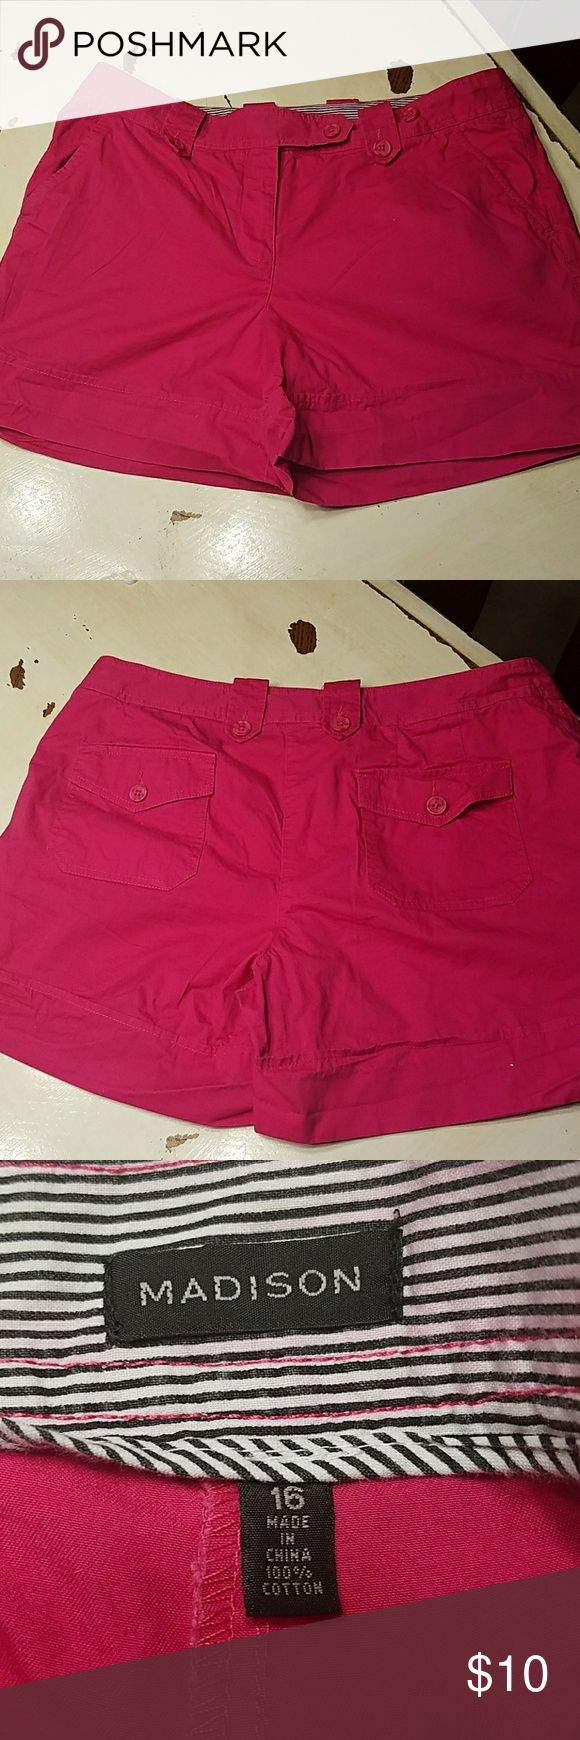 EUC Pink shorts! Excellent Used Condition. Hot pink shorts. Madison Shorts